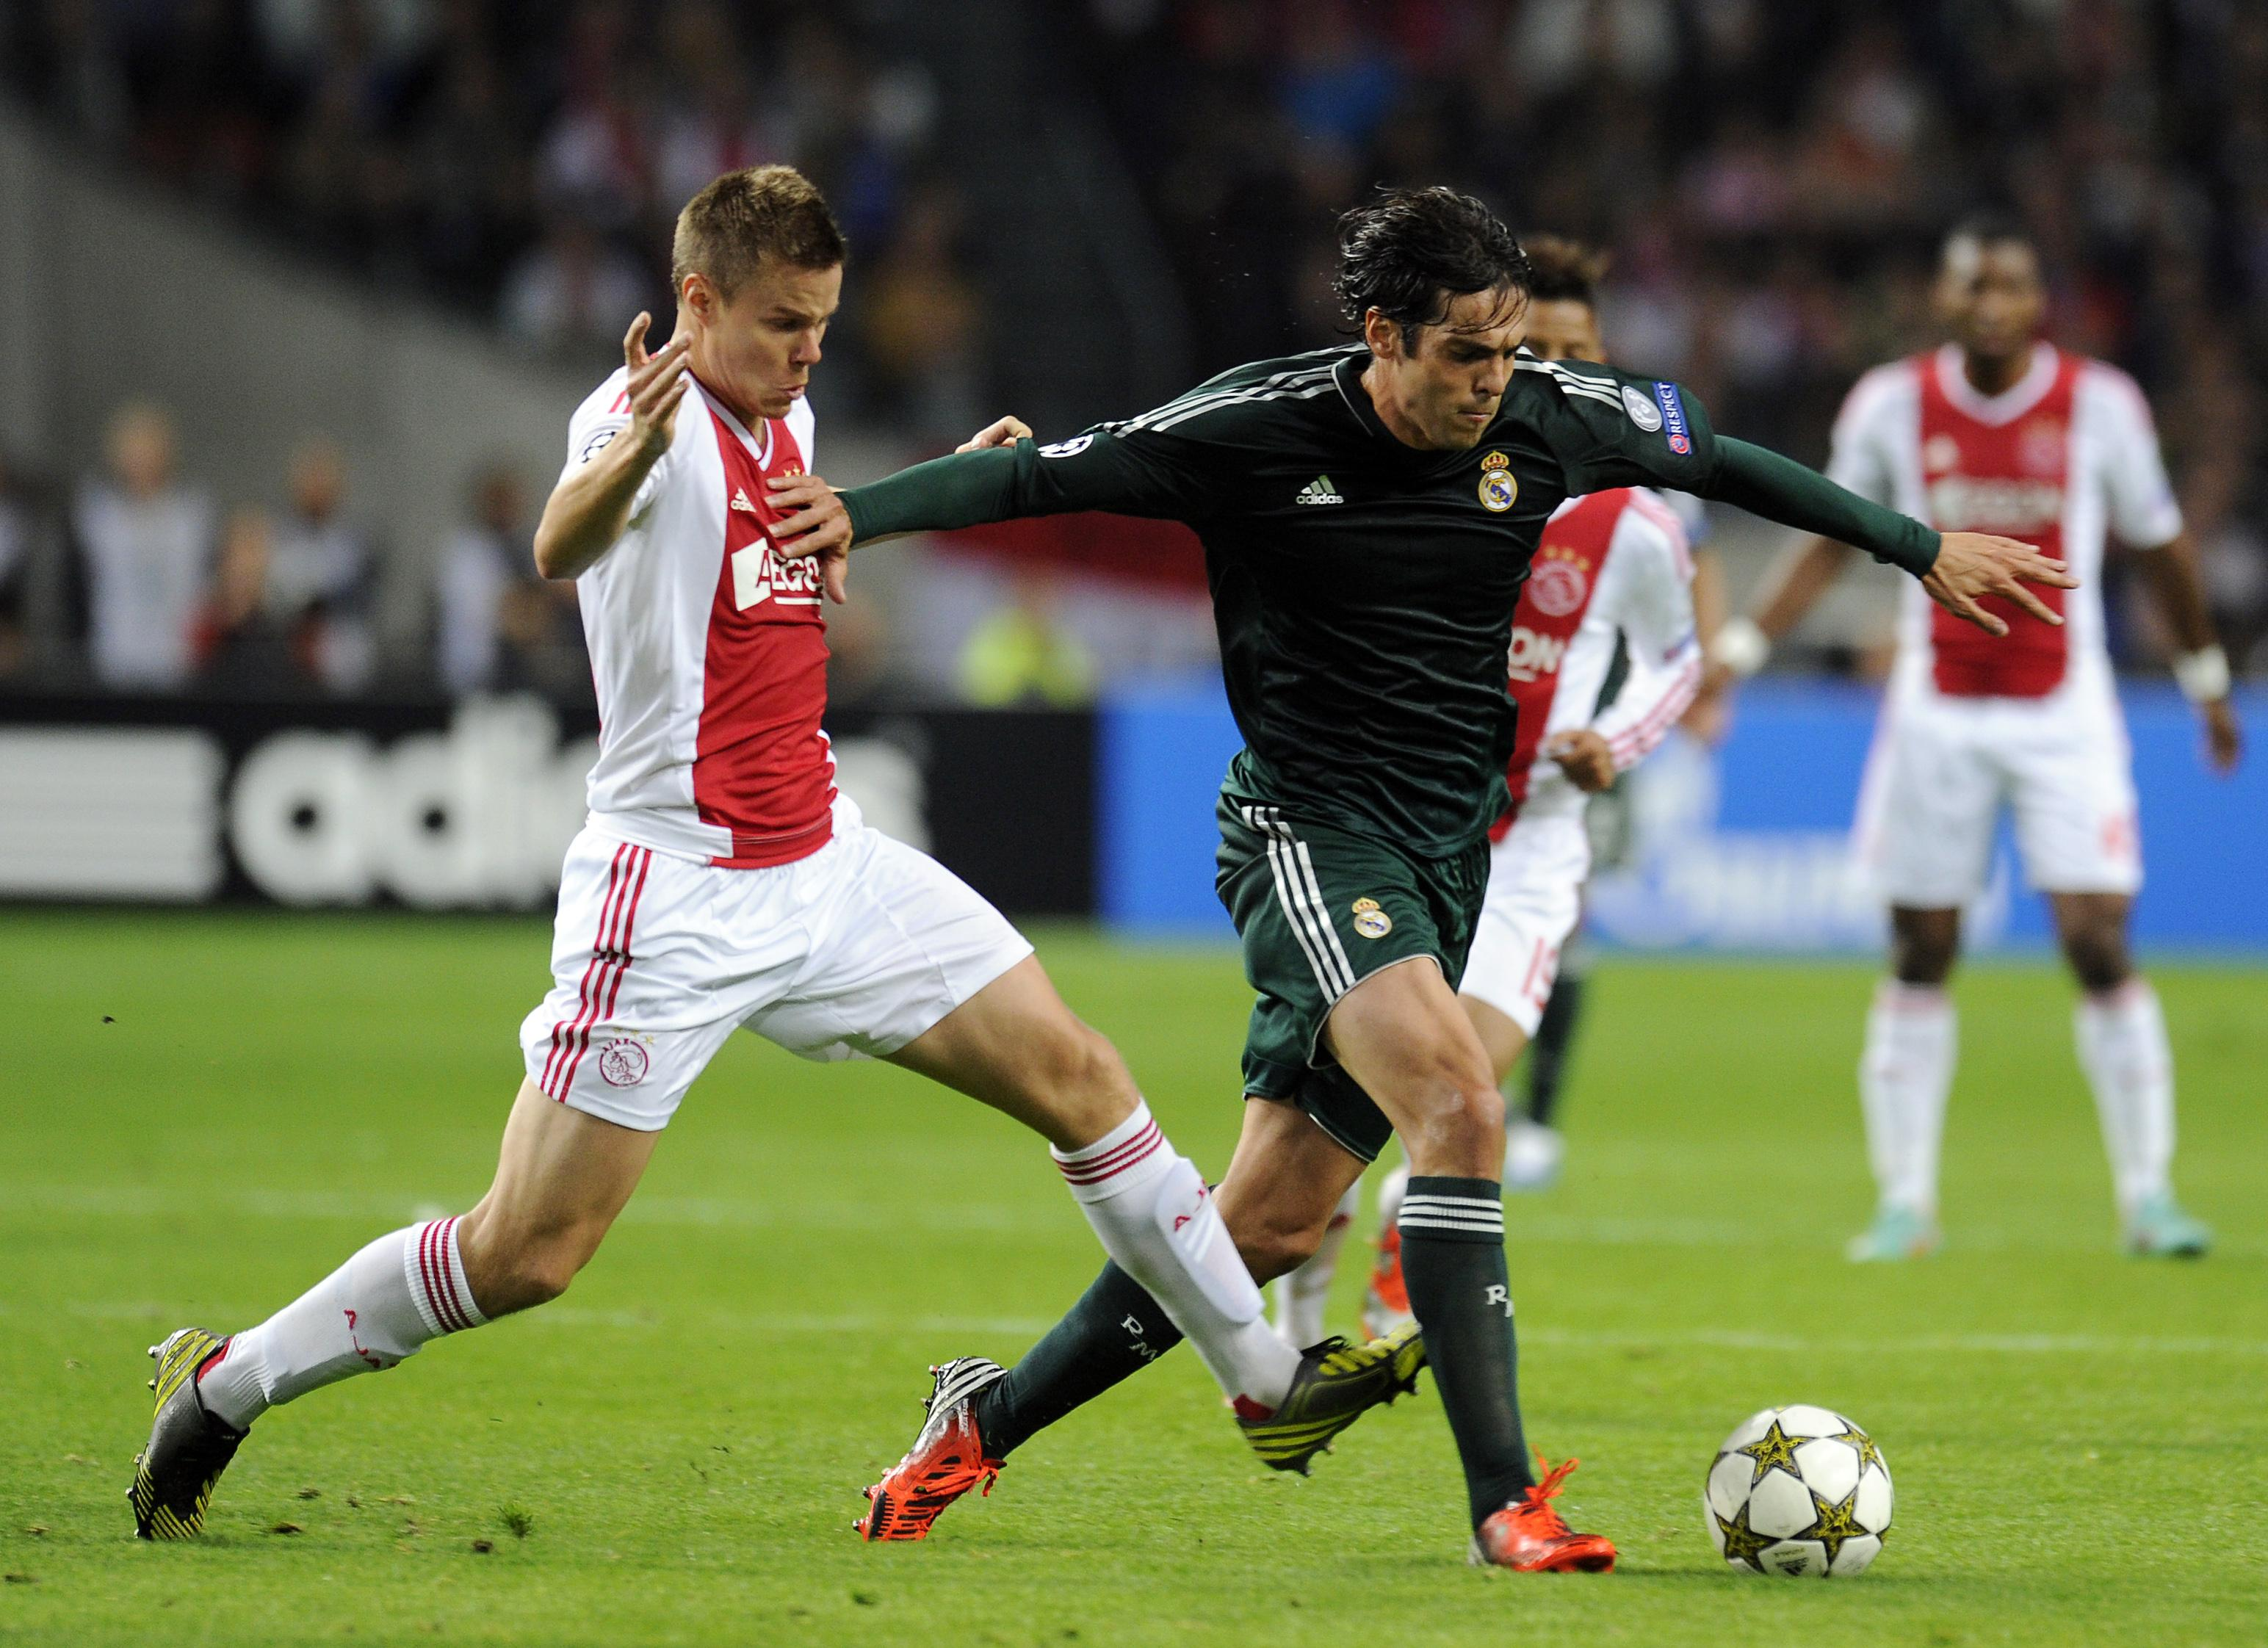 Ajax Amsterdam's Niklas Moisander Fights For The Ball With